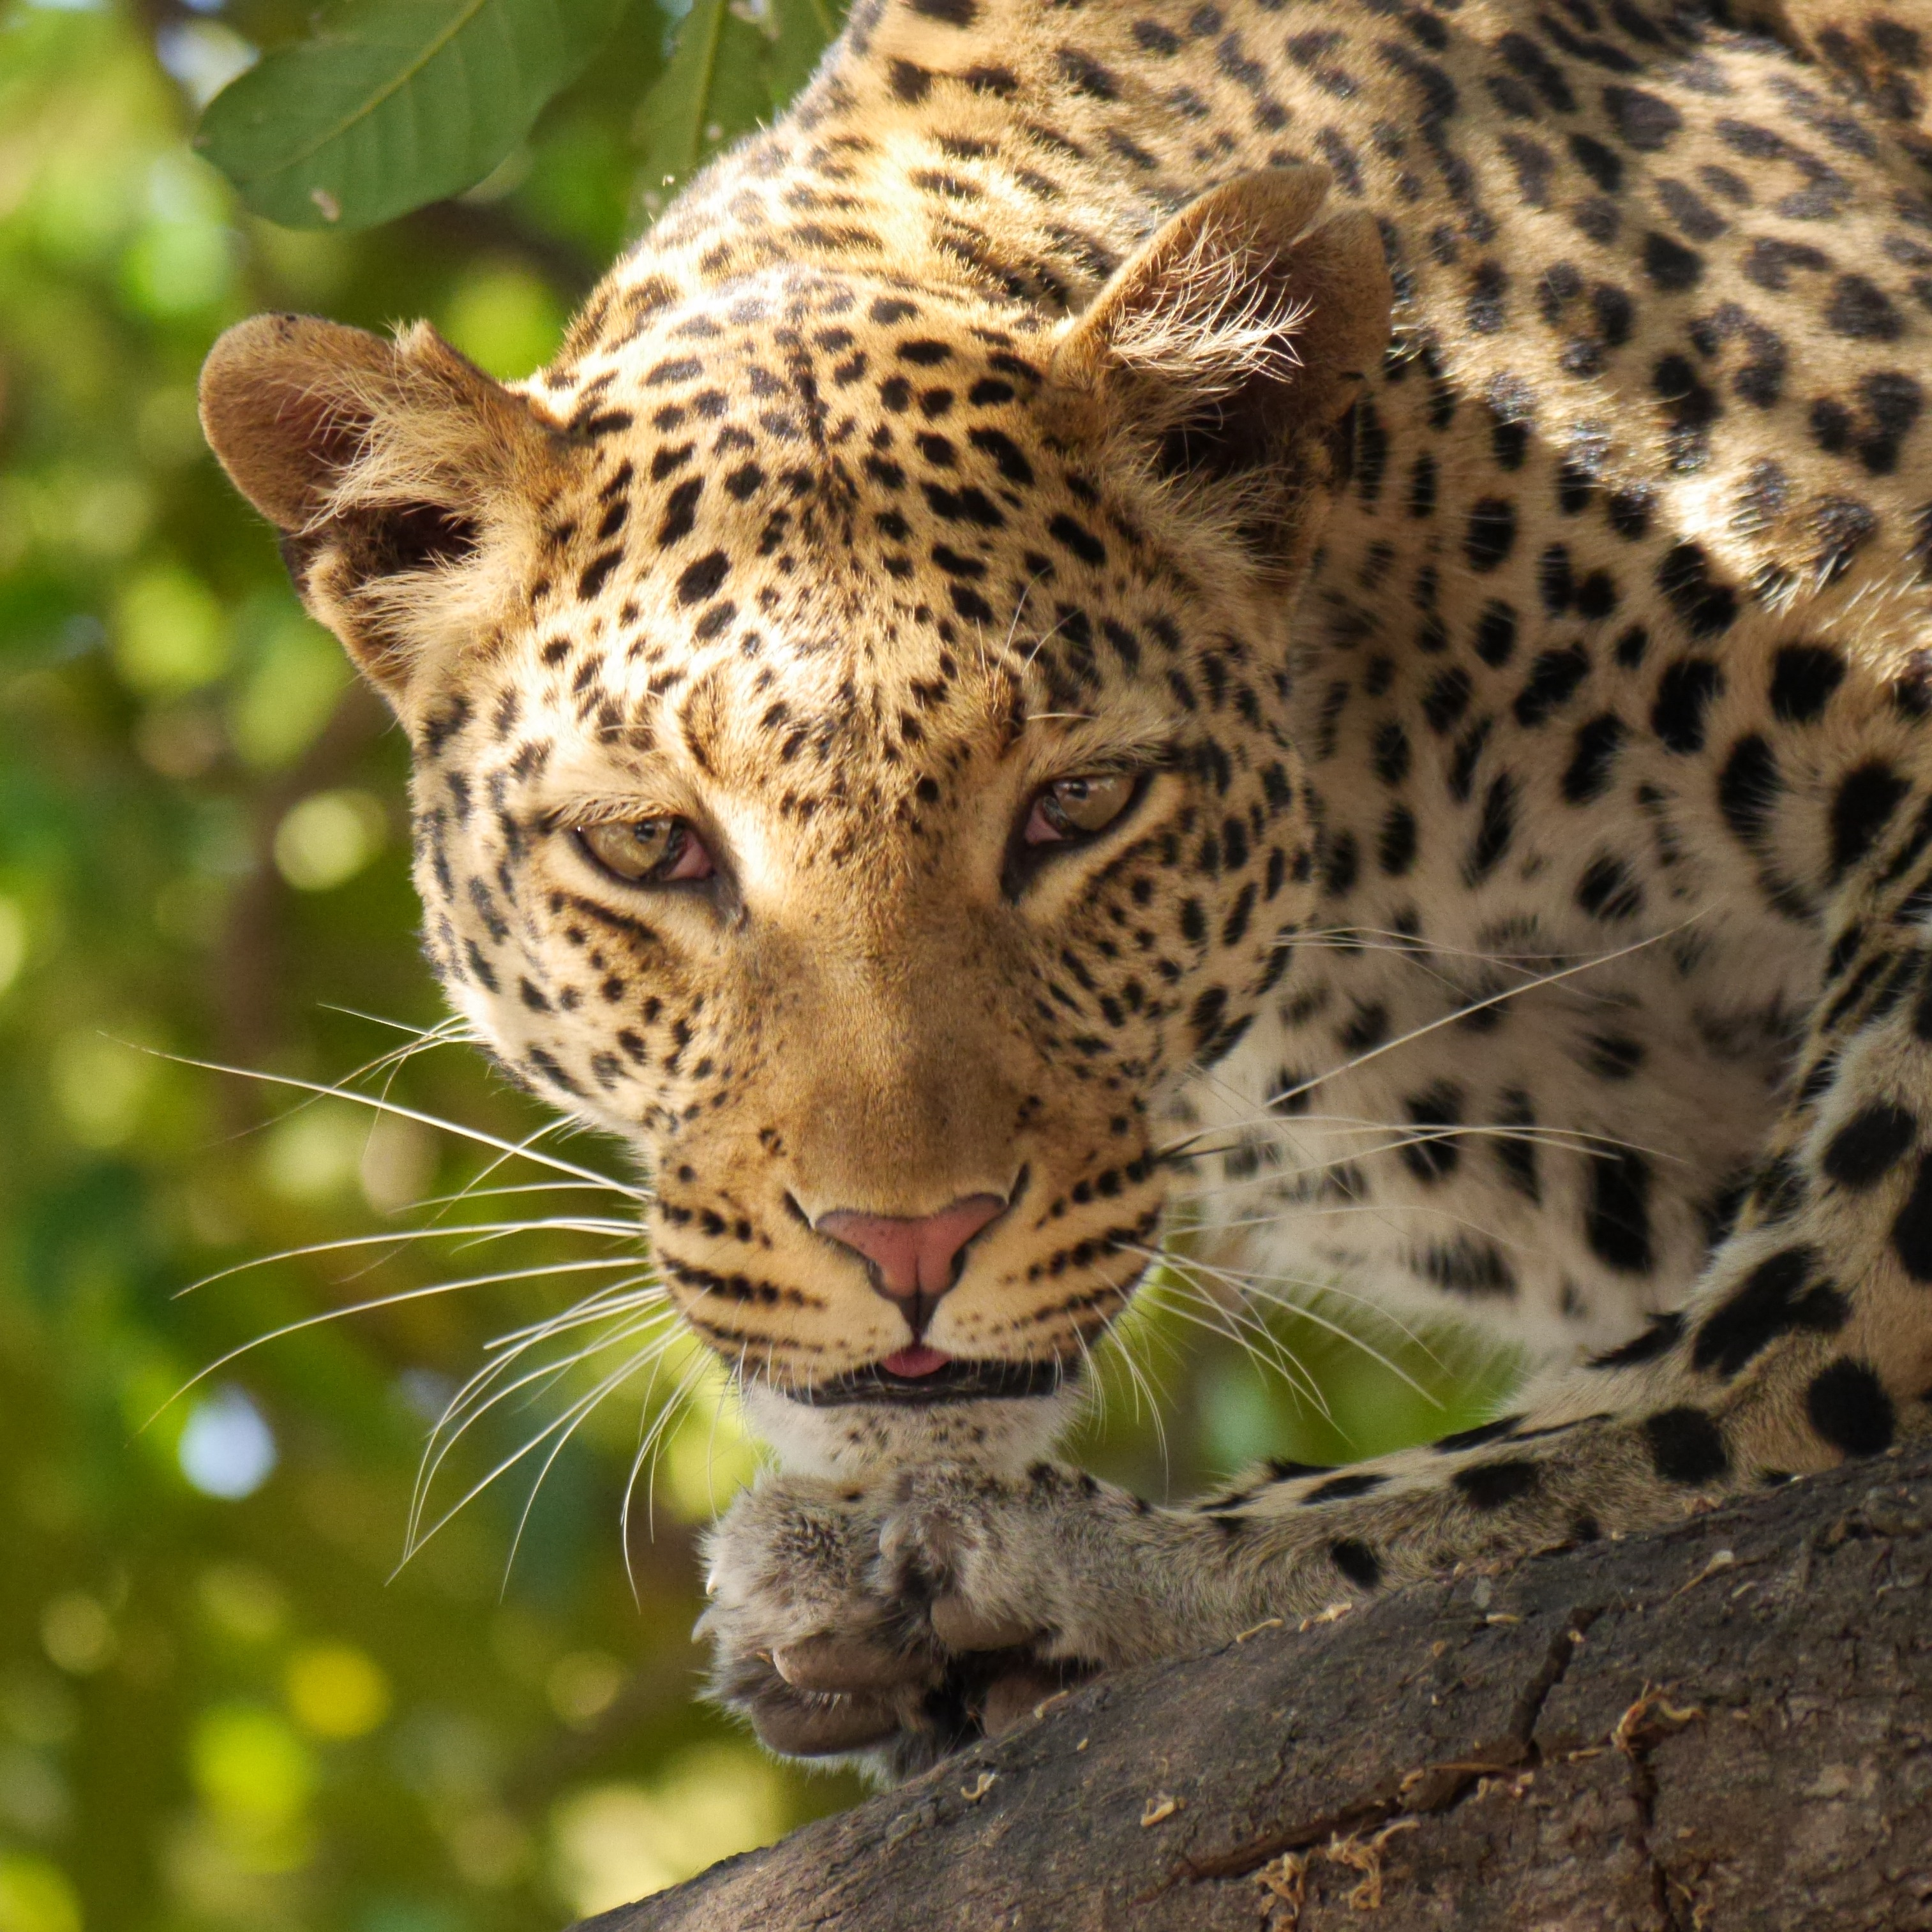 Leopard Photos Pexels Free Stock Photos